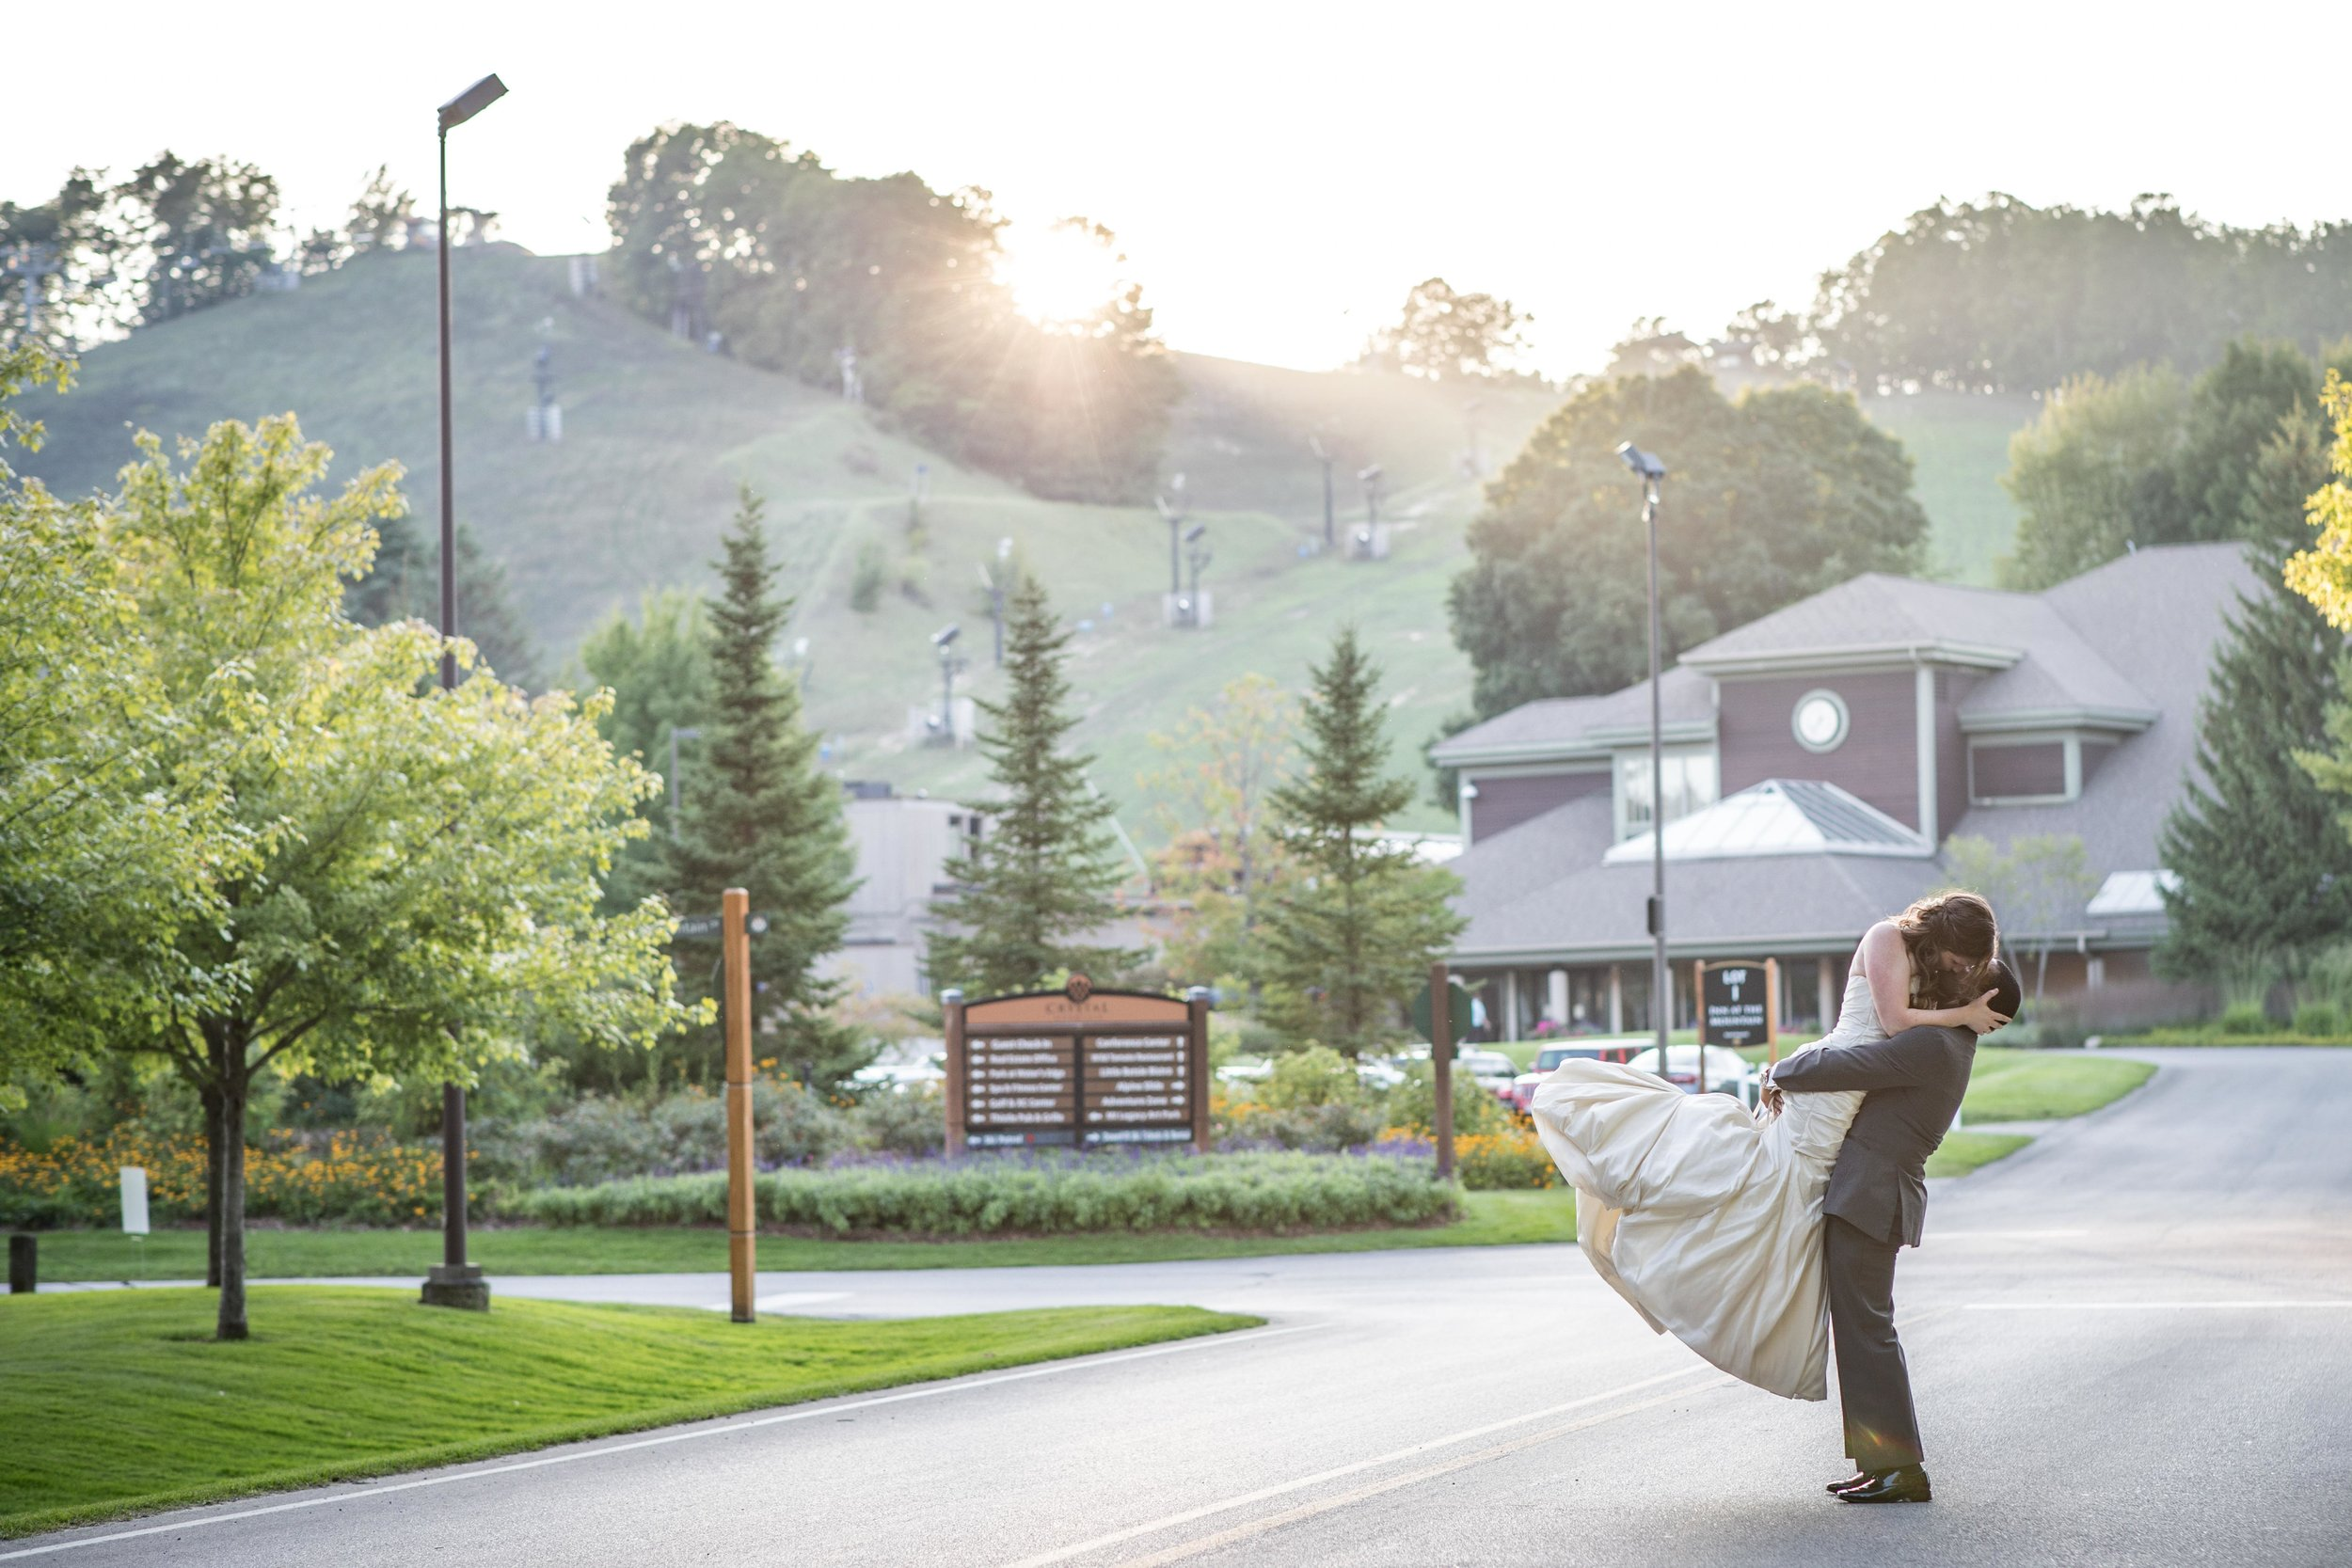 dramatic landscape photo of crystal mountain in Michigan with groom lifting bride as she kisses him during sunset over the mountains